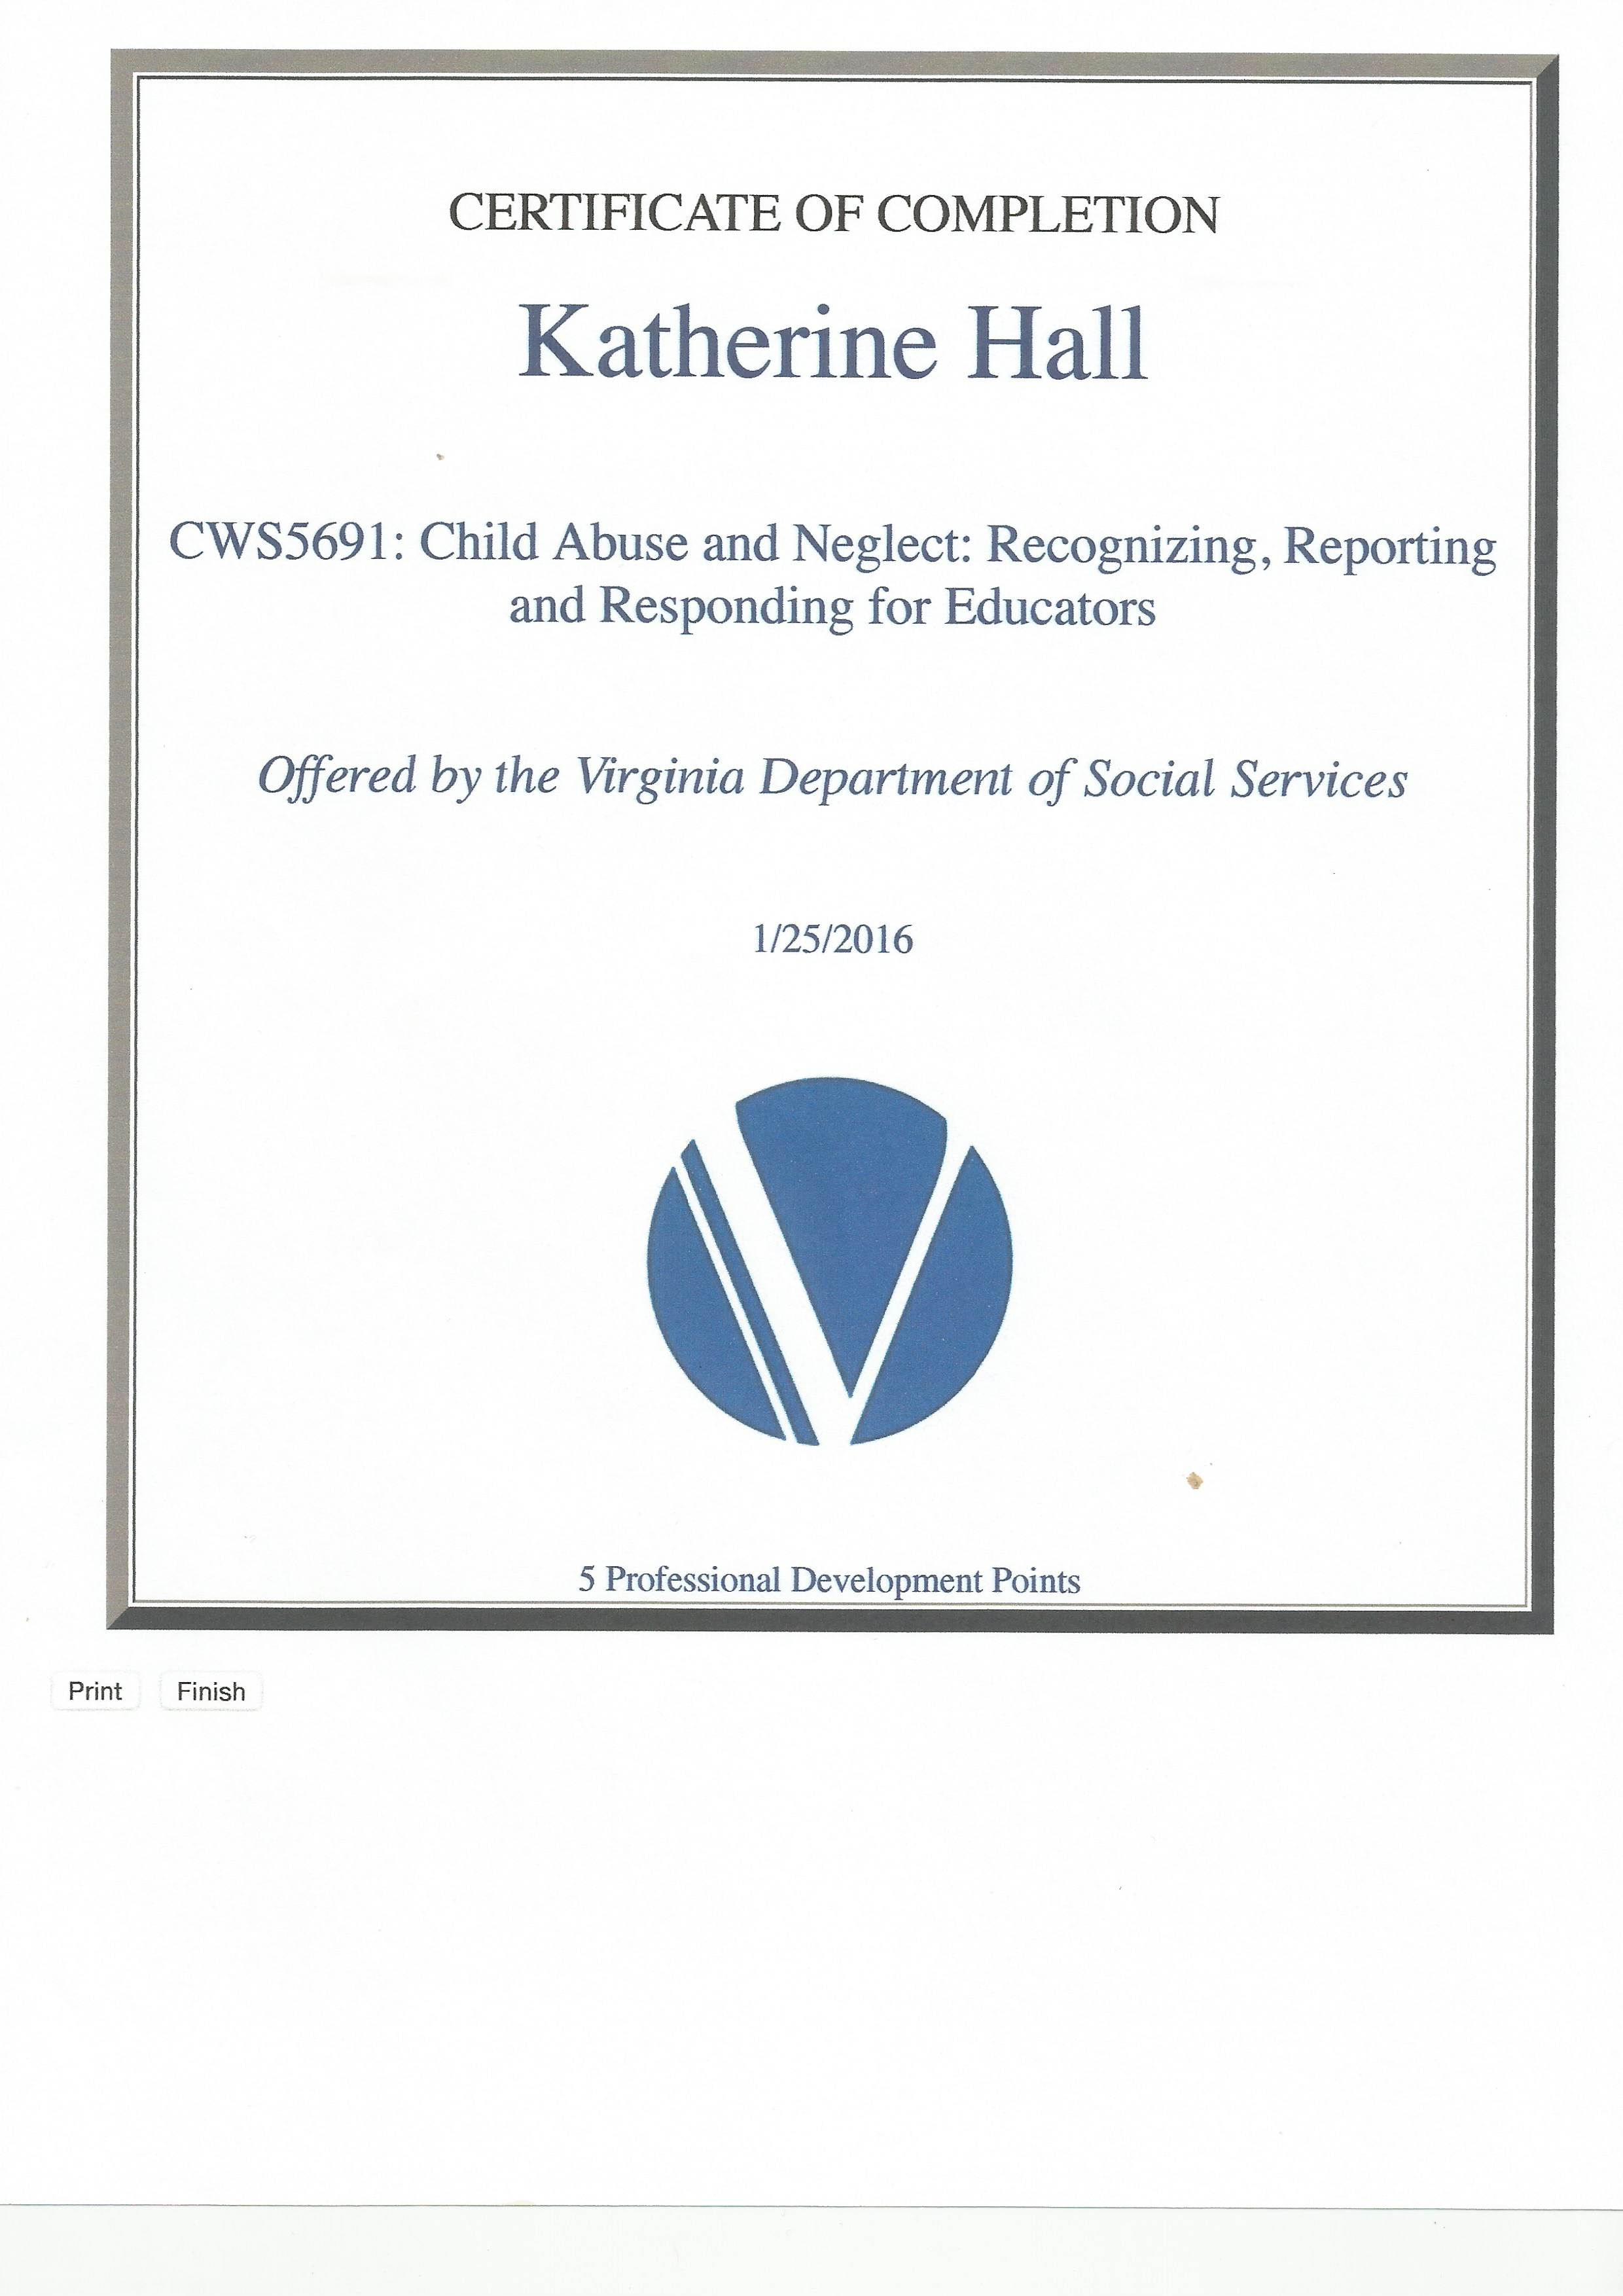 Child abuse and neglect certification katherine hall this certificate shows my completion of the training module child abuse and neglect recognizing reporting and responding for educators 1betcityfo Image collections